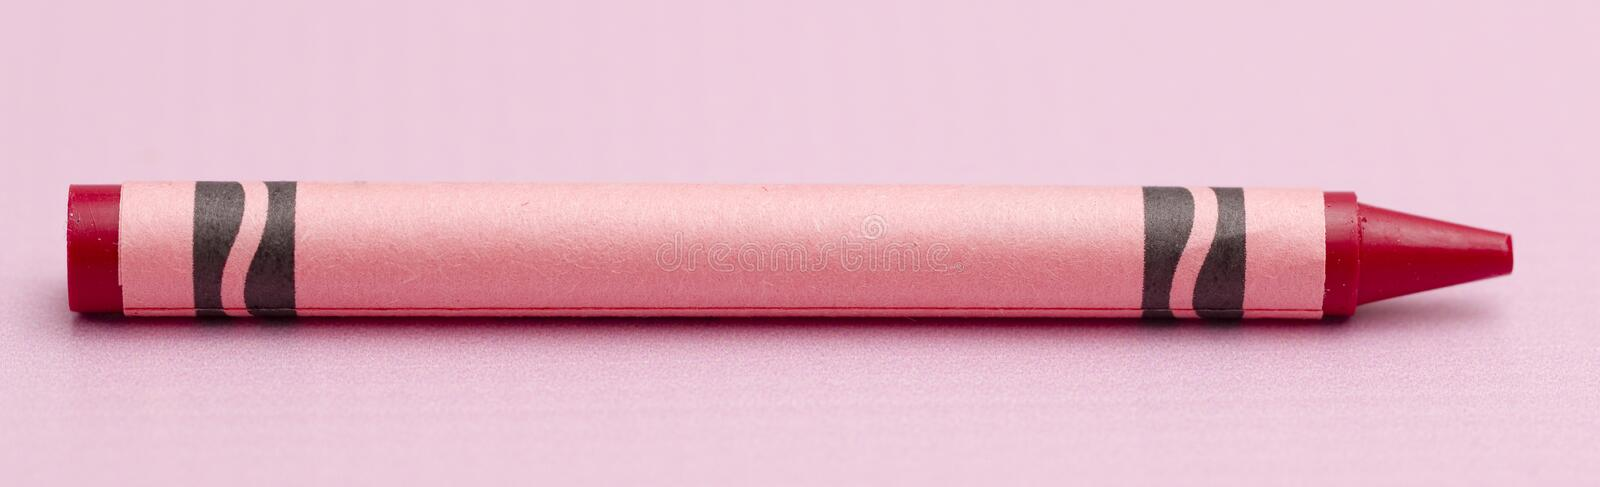 A Single Crayon. On a Pink Background stock image